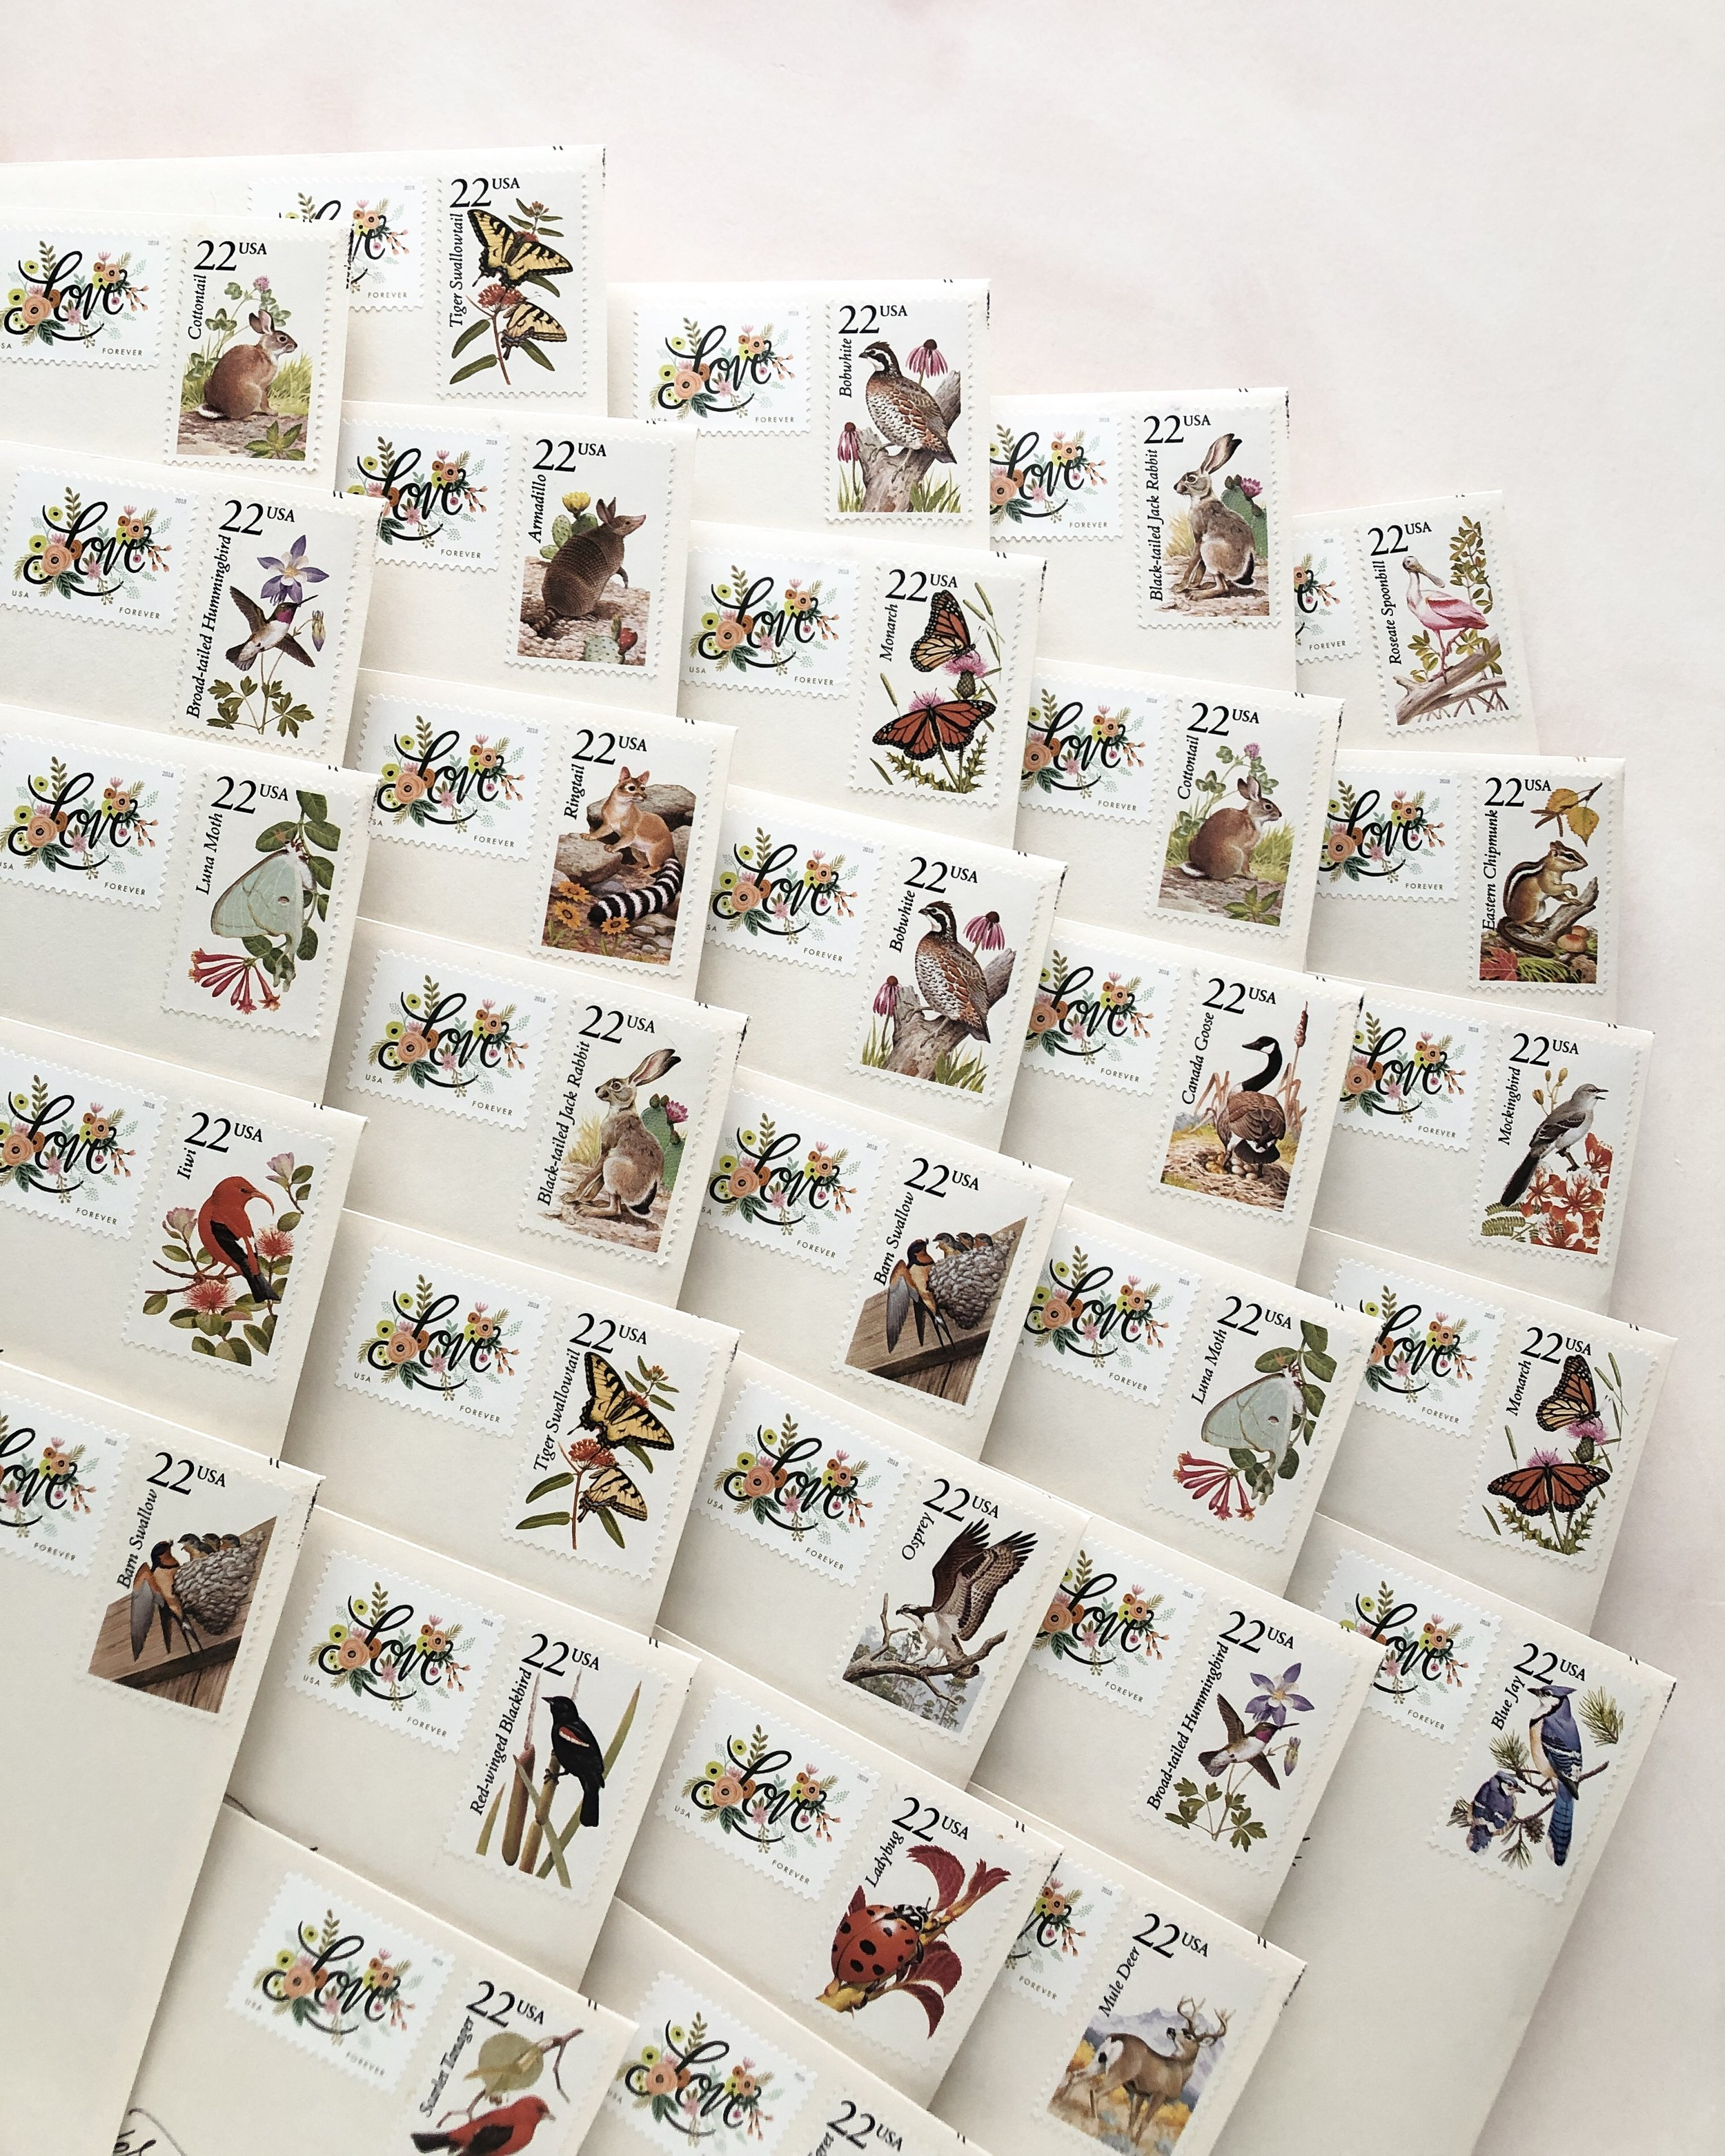 this set features another mix of modern & vintage postage. The vintage postage sheets, with the stamps valued at 22 cents each, featured a variety of nature stamps that I absolutely loved.